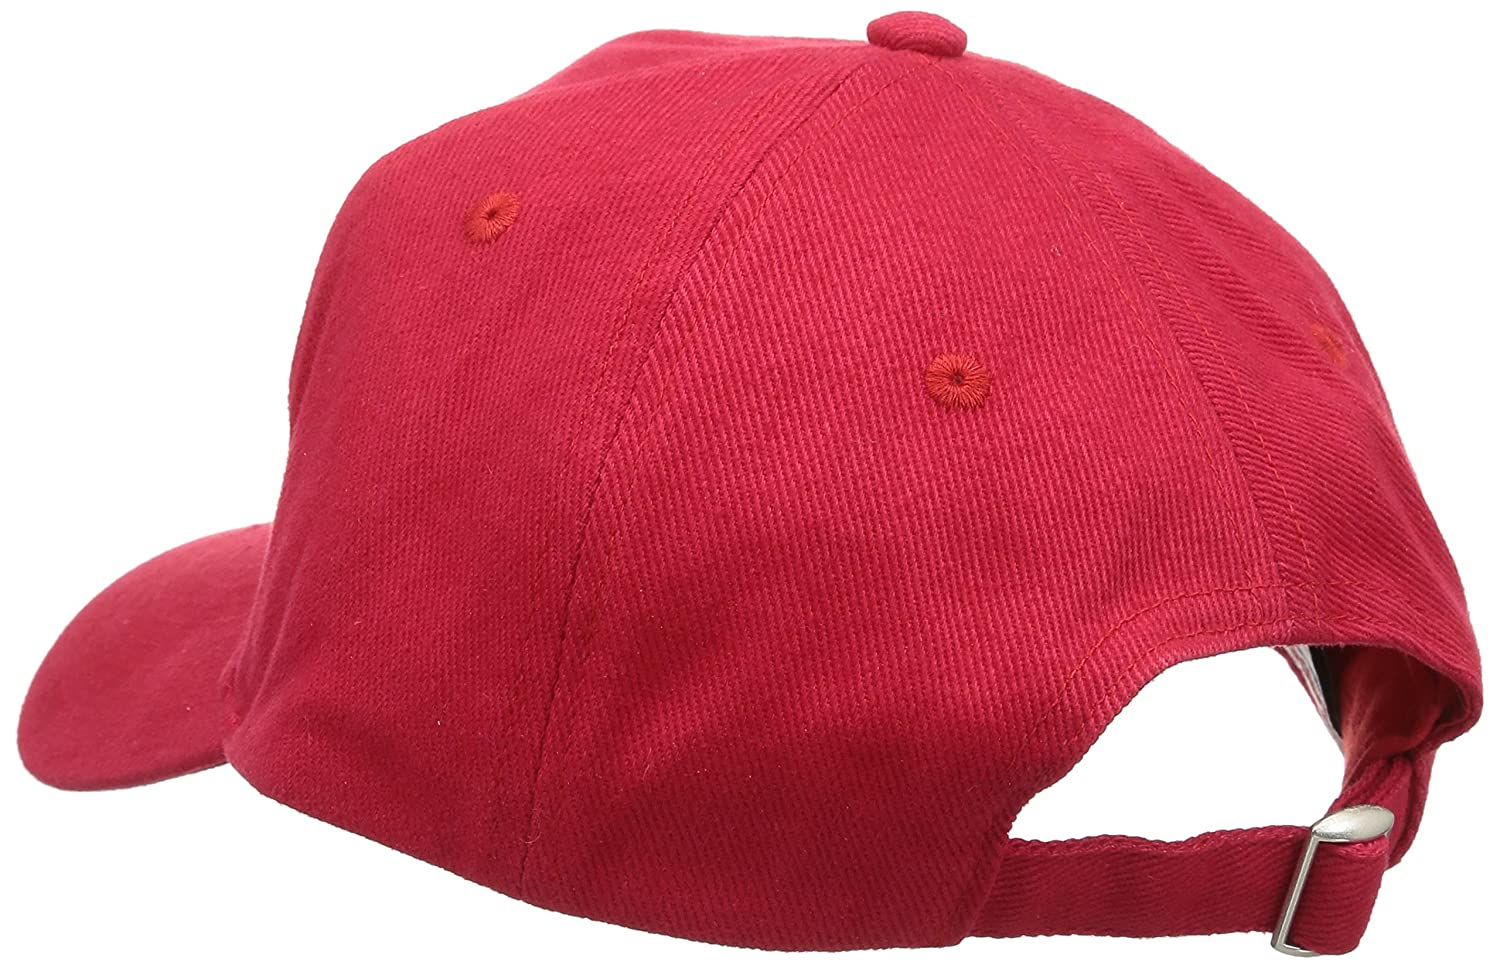 Unisex Ice Cap Baseball Cap Dandy Star